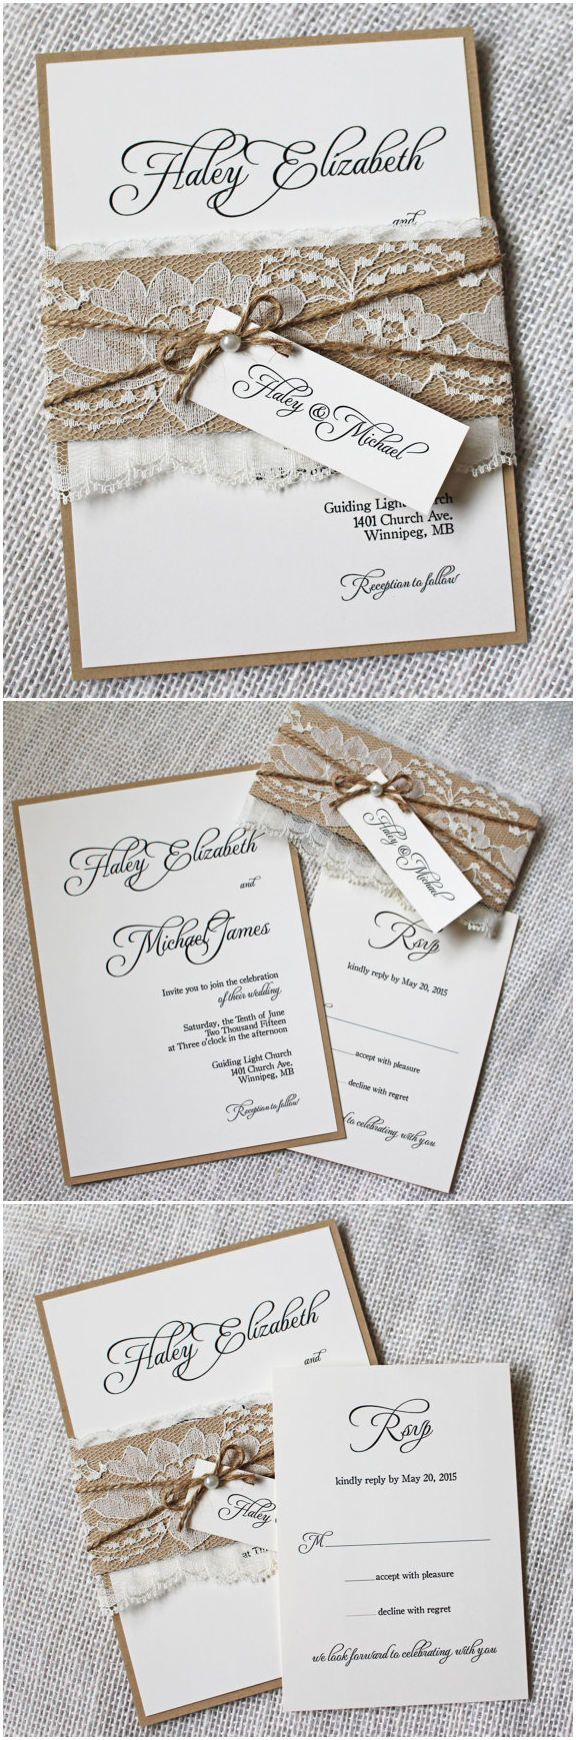 chic rustic wedding invitation cards with pearl lace and burlap